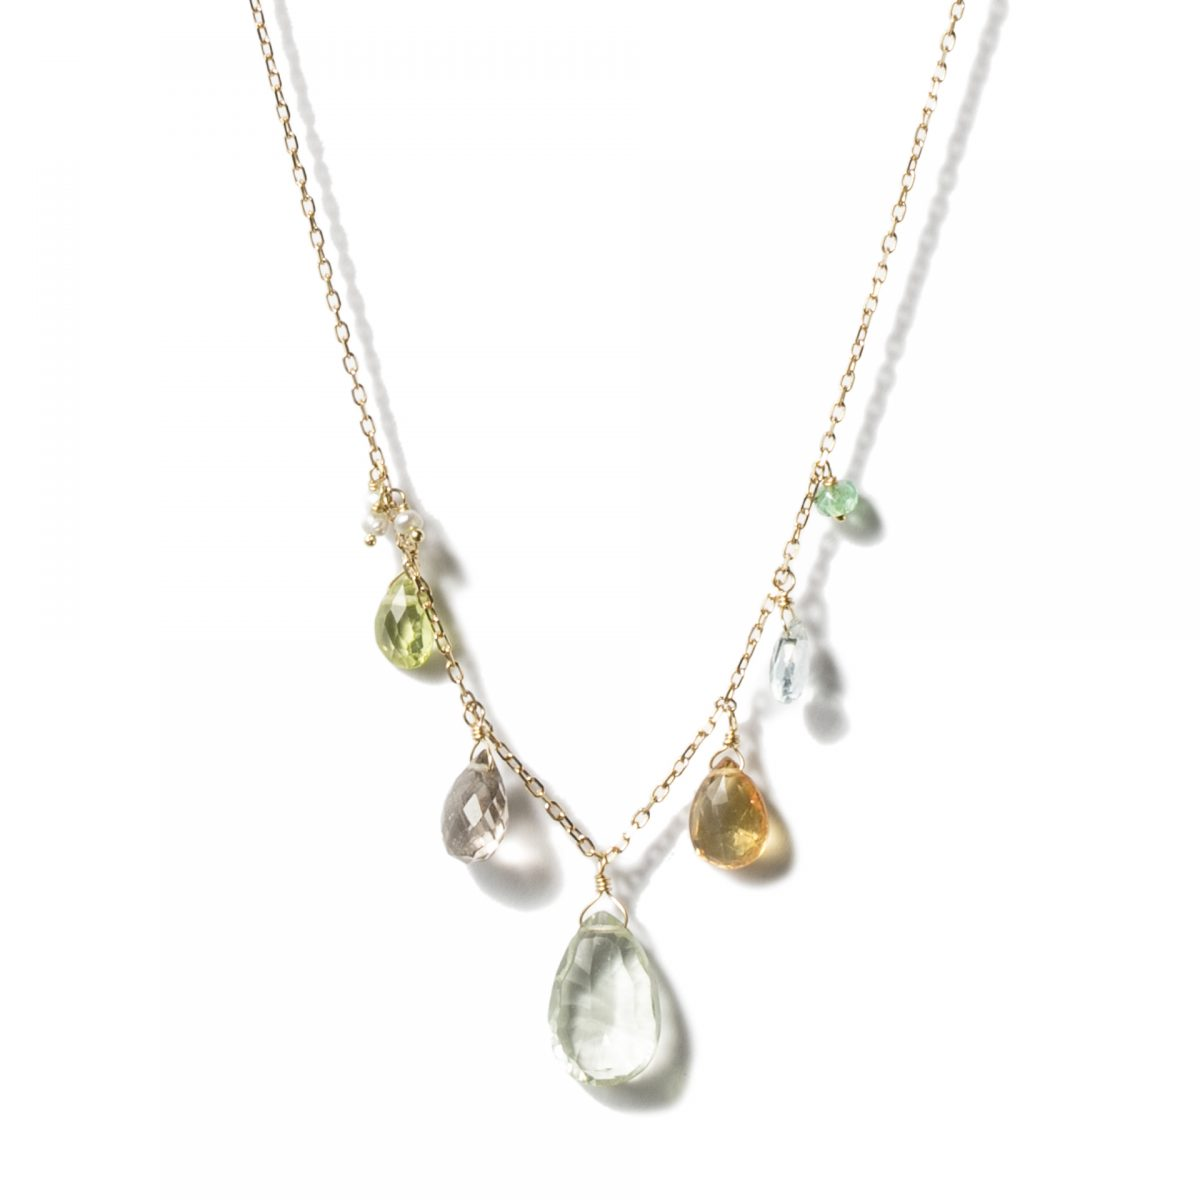 swp_necklace_3_191